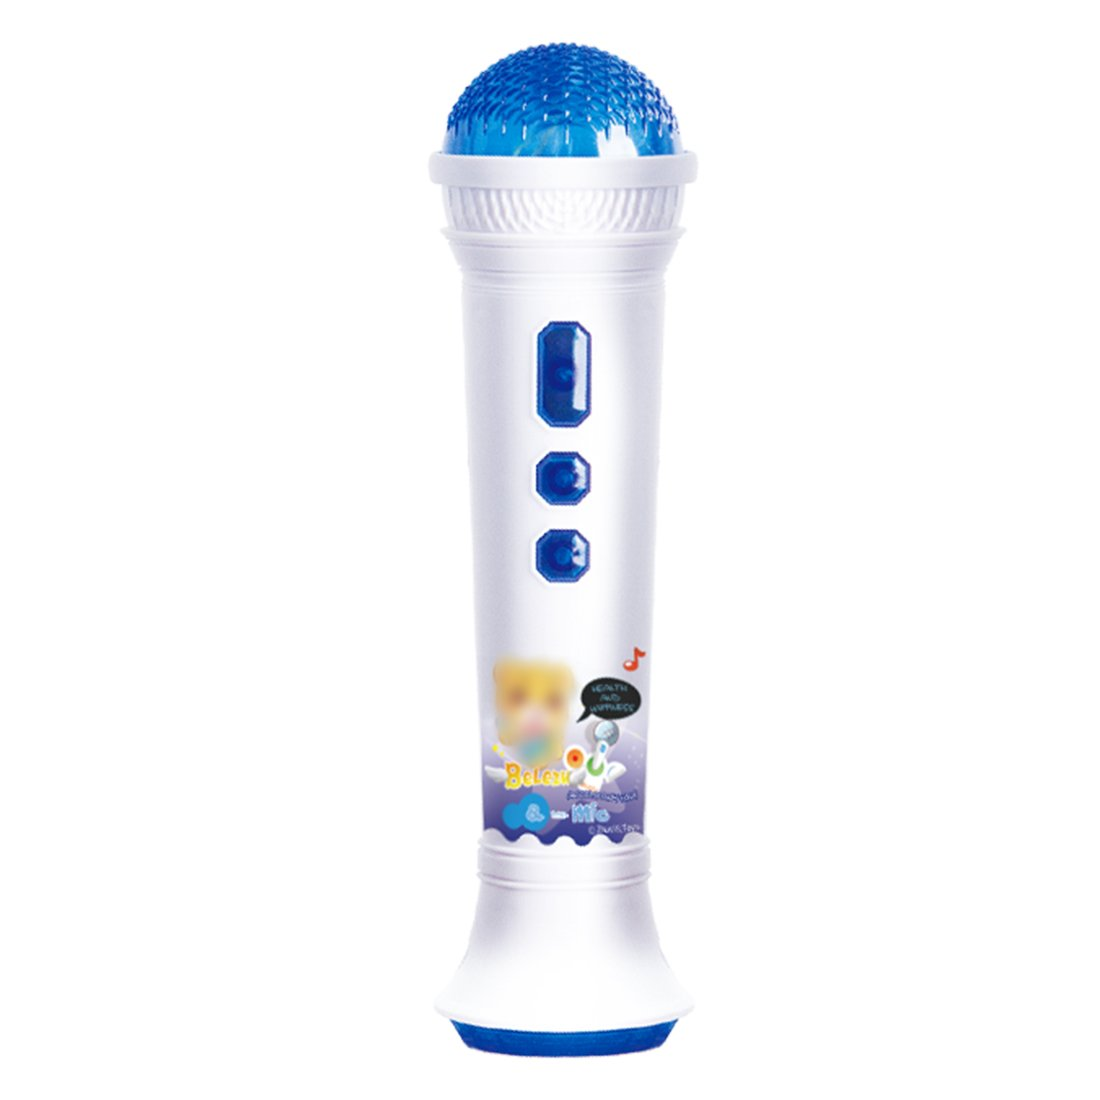 FutureShapers Kids Microphone Toy Music PlayerKaraoke Electric Instrument with 2 Entertainment Modes